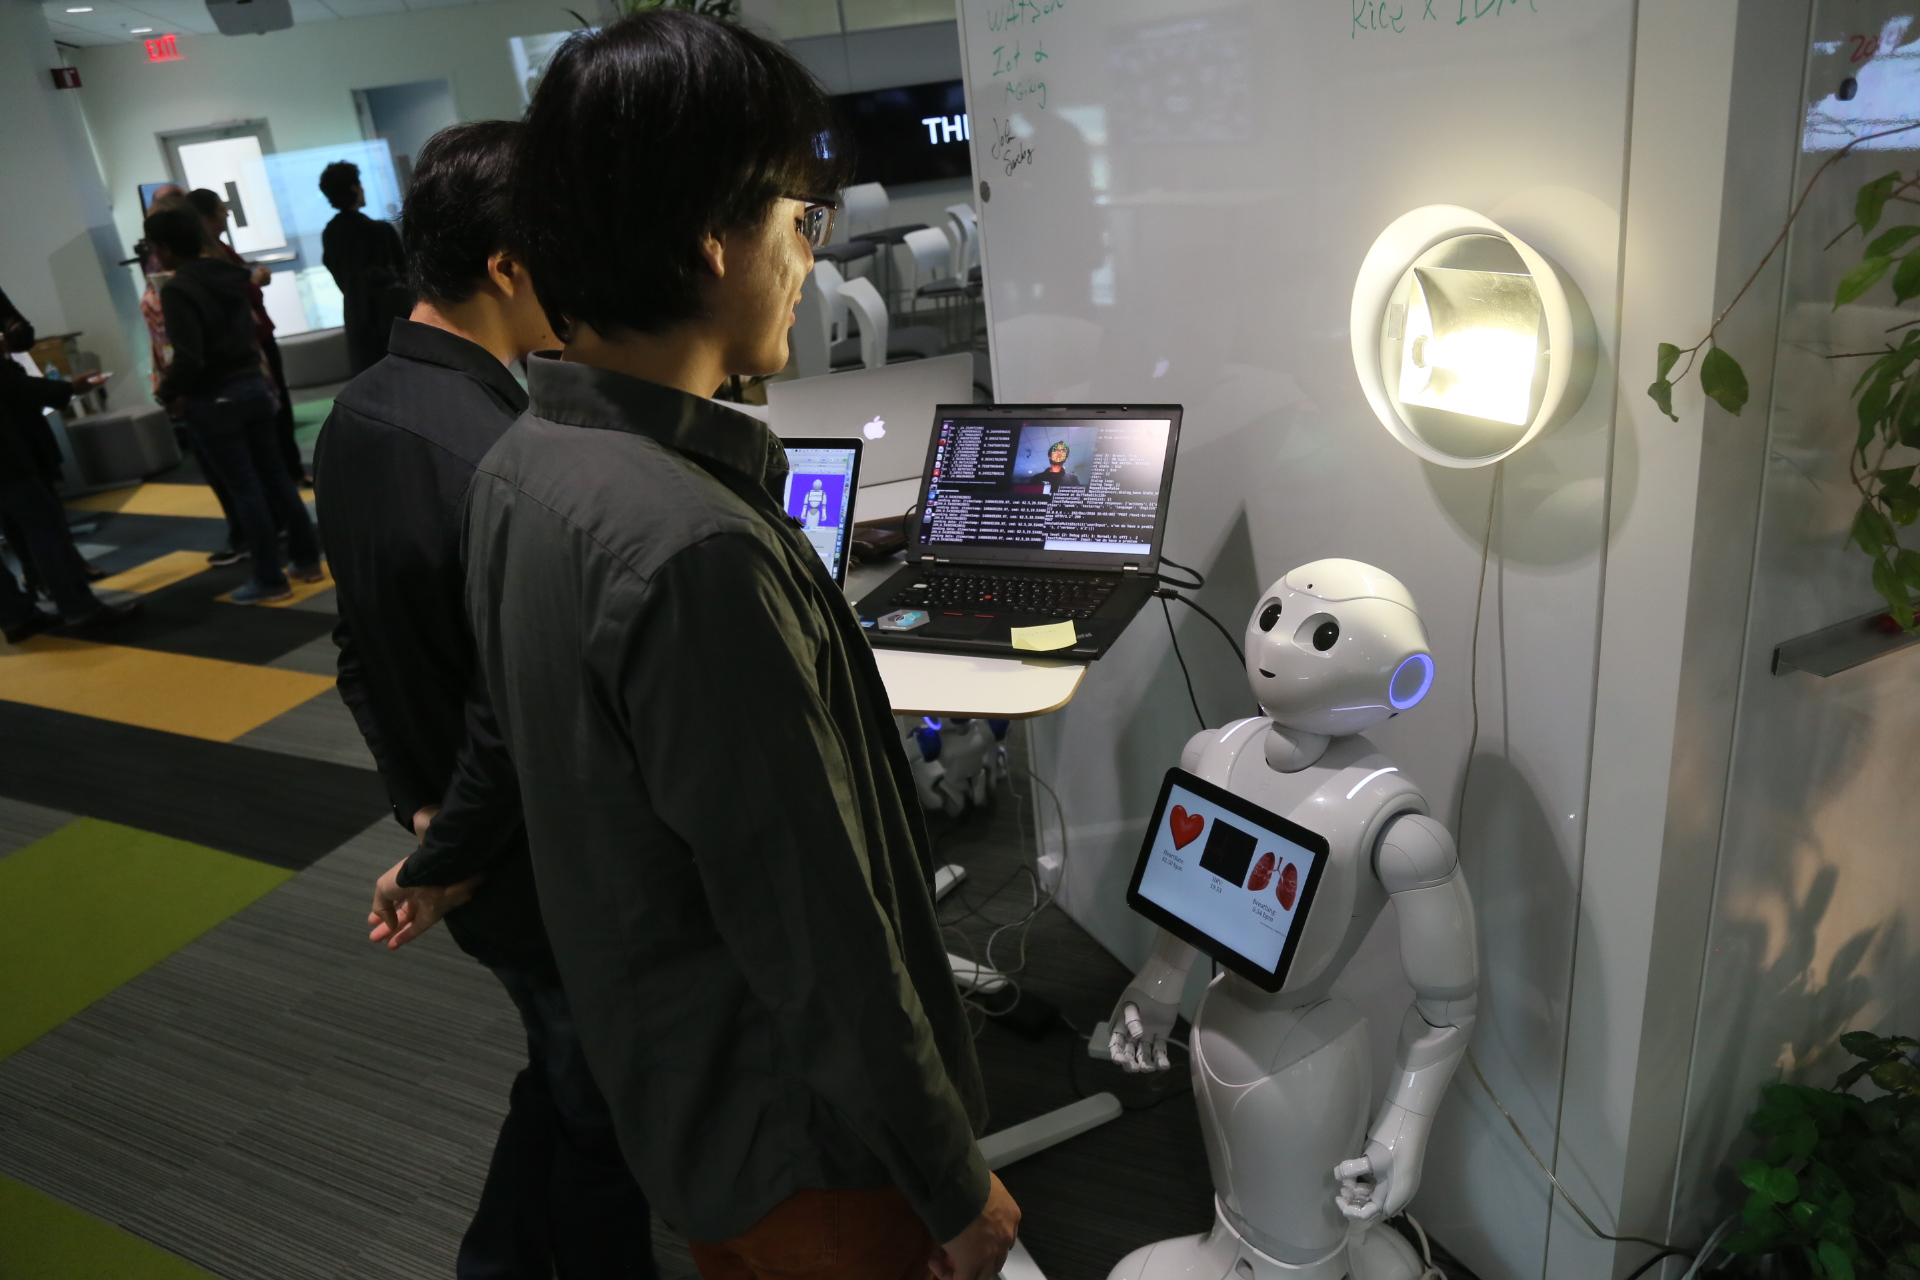 A man stands facing a SoftBank Pepper robot. The robot is leveraging its camera to measure the man's vital signs, such as heart rate, and displays it on an iPad mounted to the front of the robot.